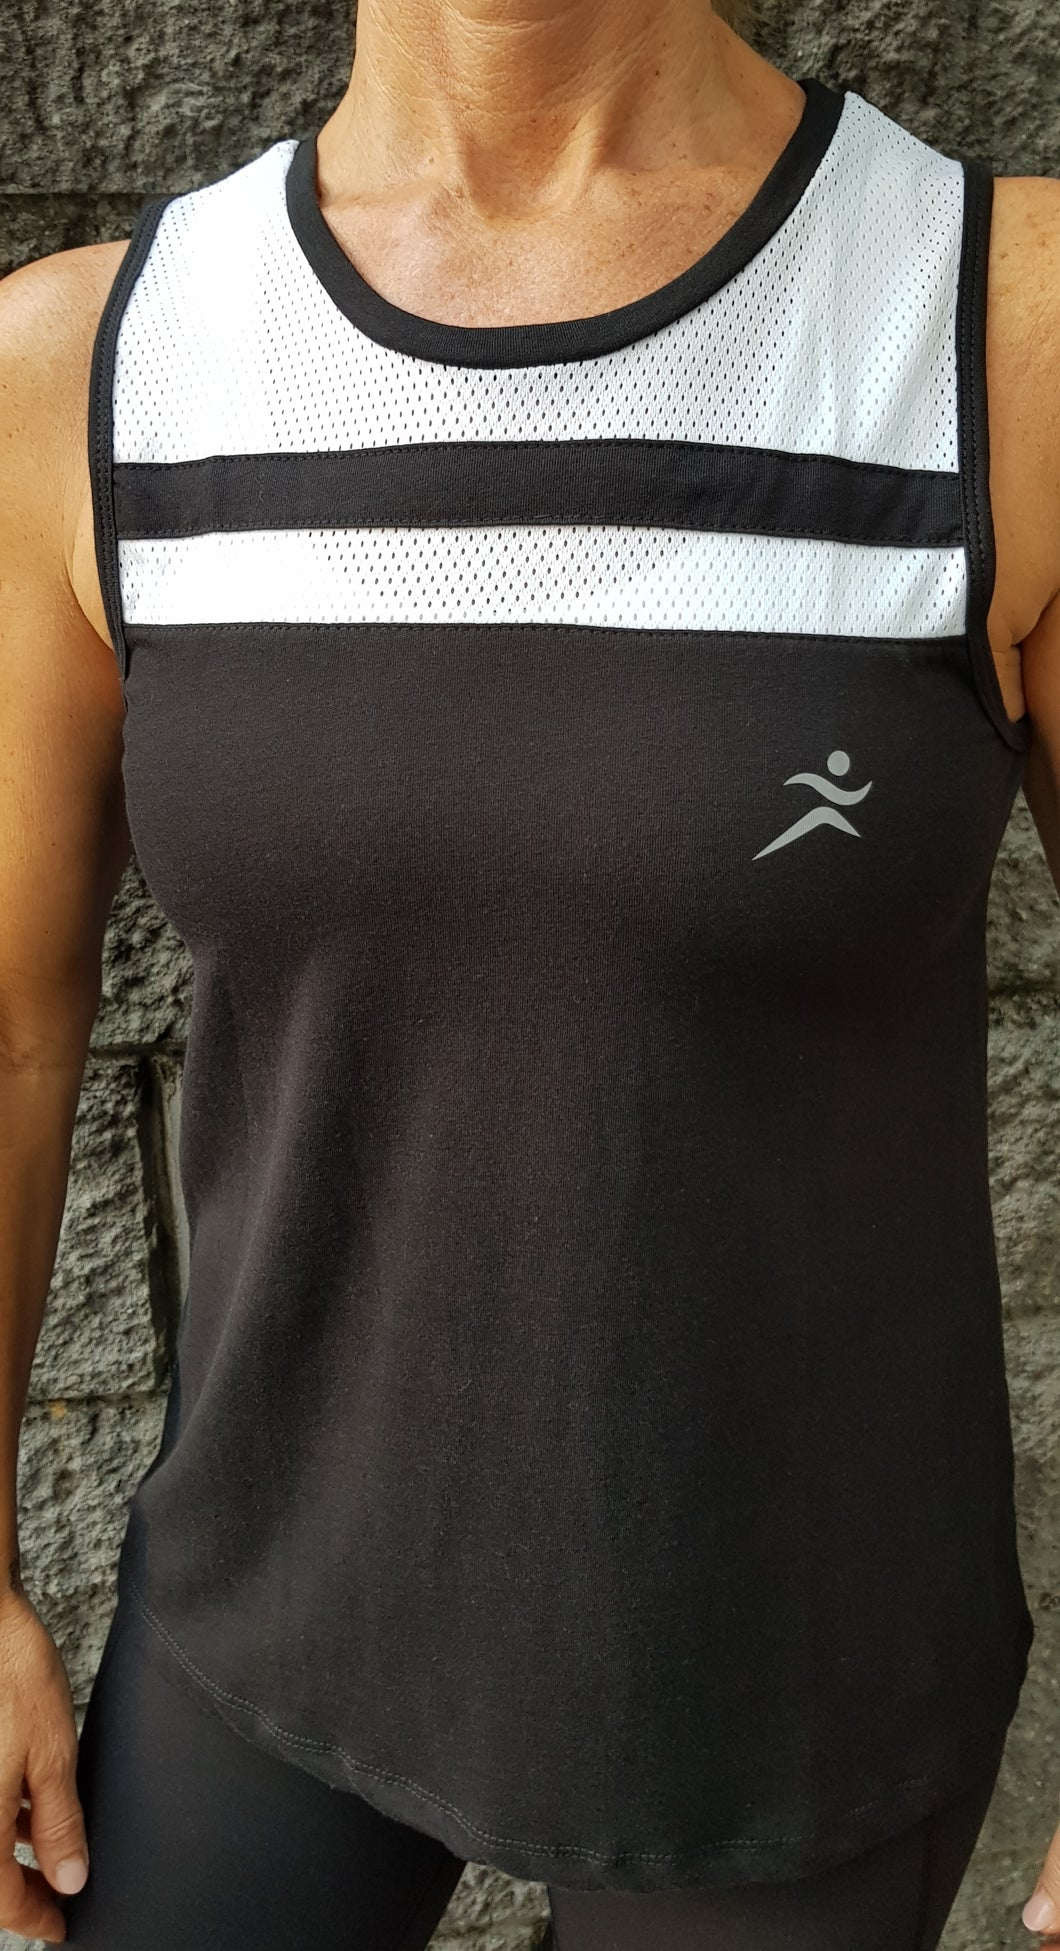 Gmaxx Double Mesh Tank. Black and White.